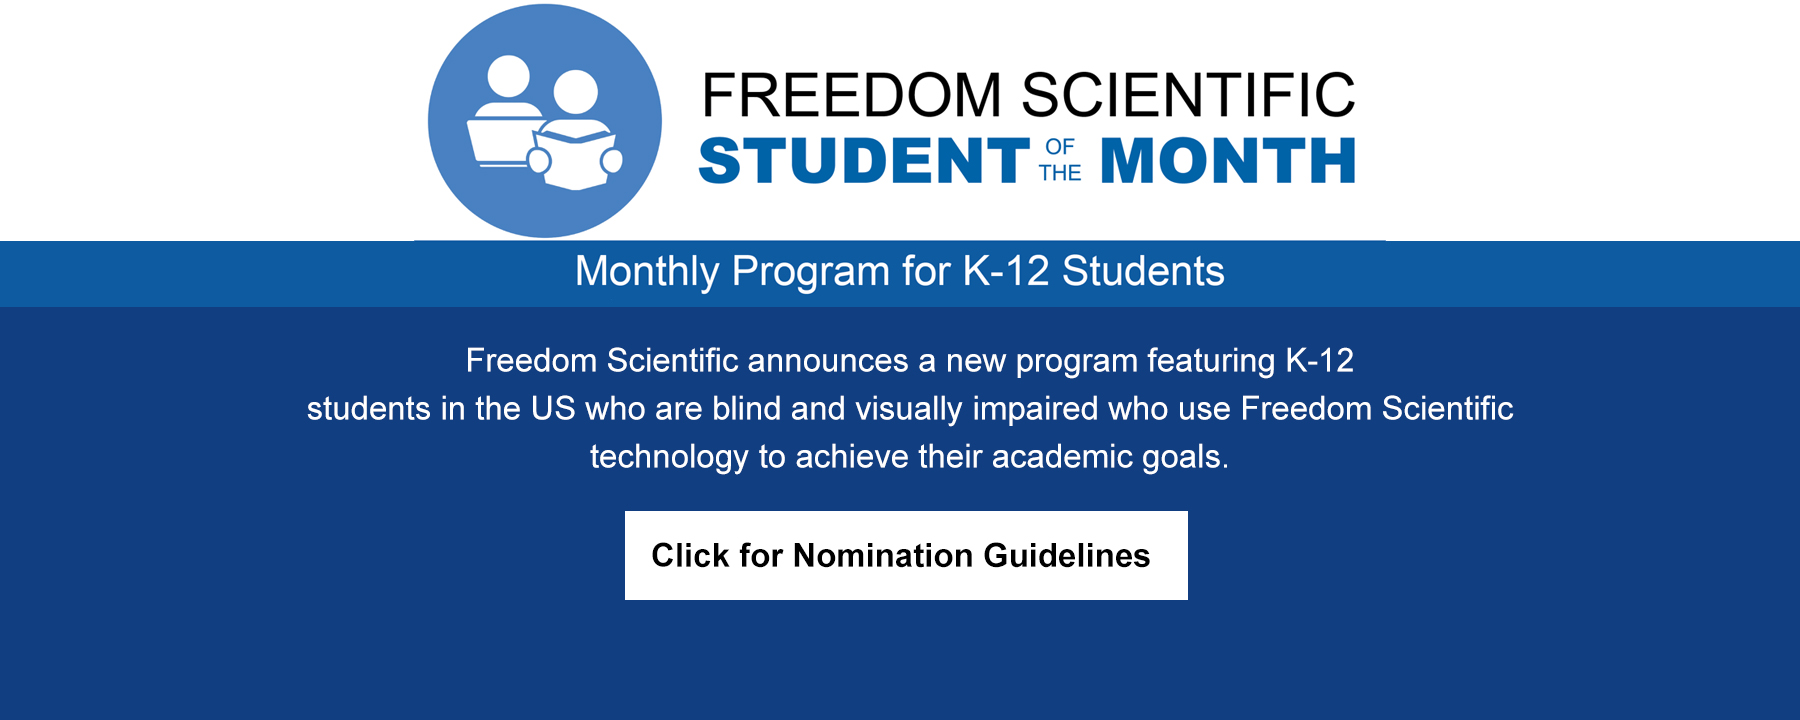 Freedom Scientific announces a new program featuring K-12 students in the US who are blind and visually impaired who use Freedom Scientific technology to achieve their academic goals.